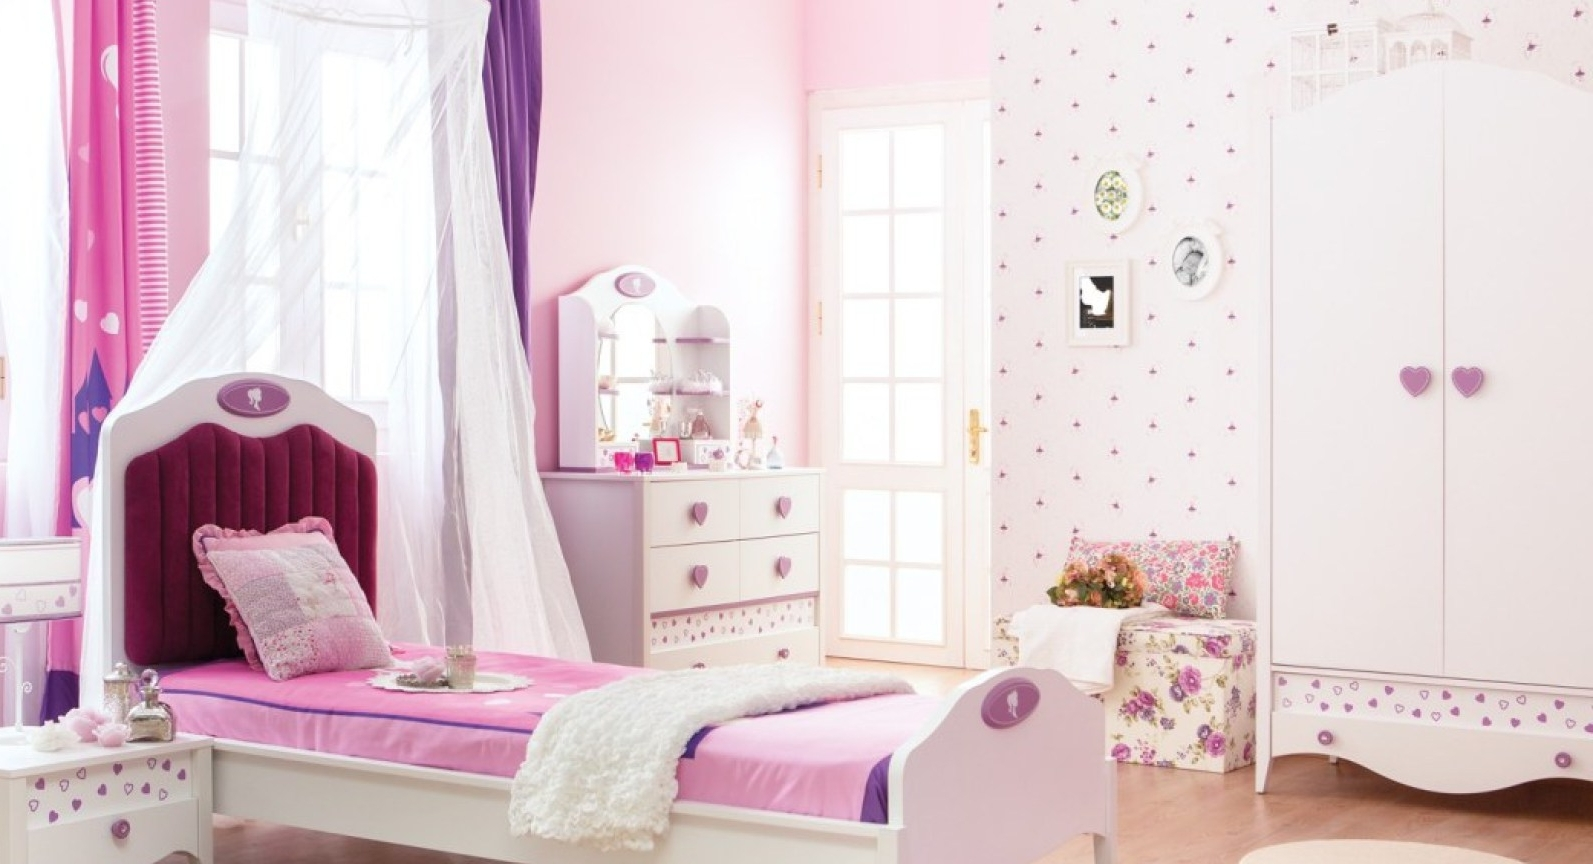 2018 Bedroom : Princess Bedroom Set Uncommon Princess And The Frog Regarding Princess Wardrobes (View 1 of 15)